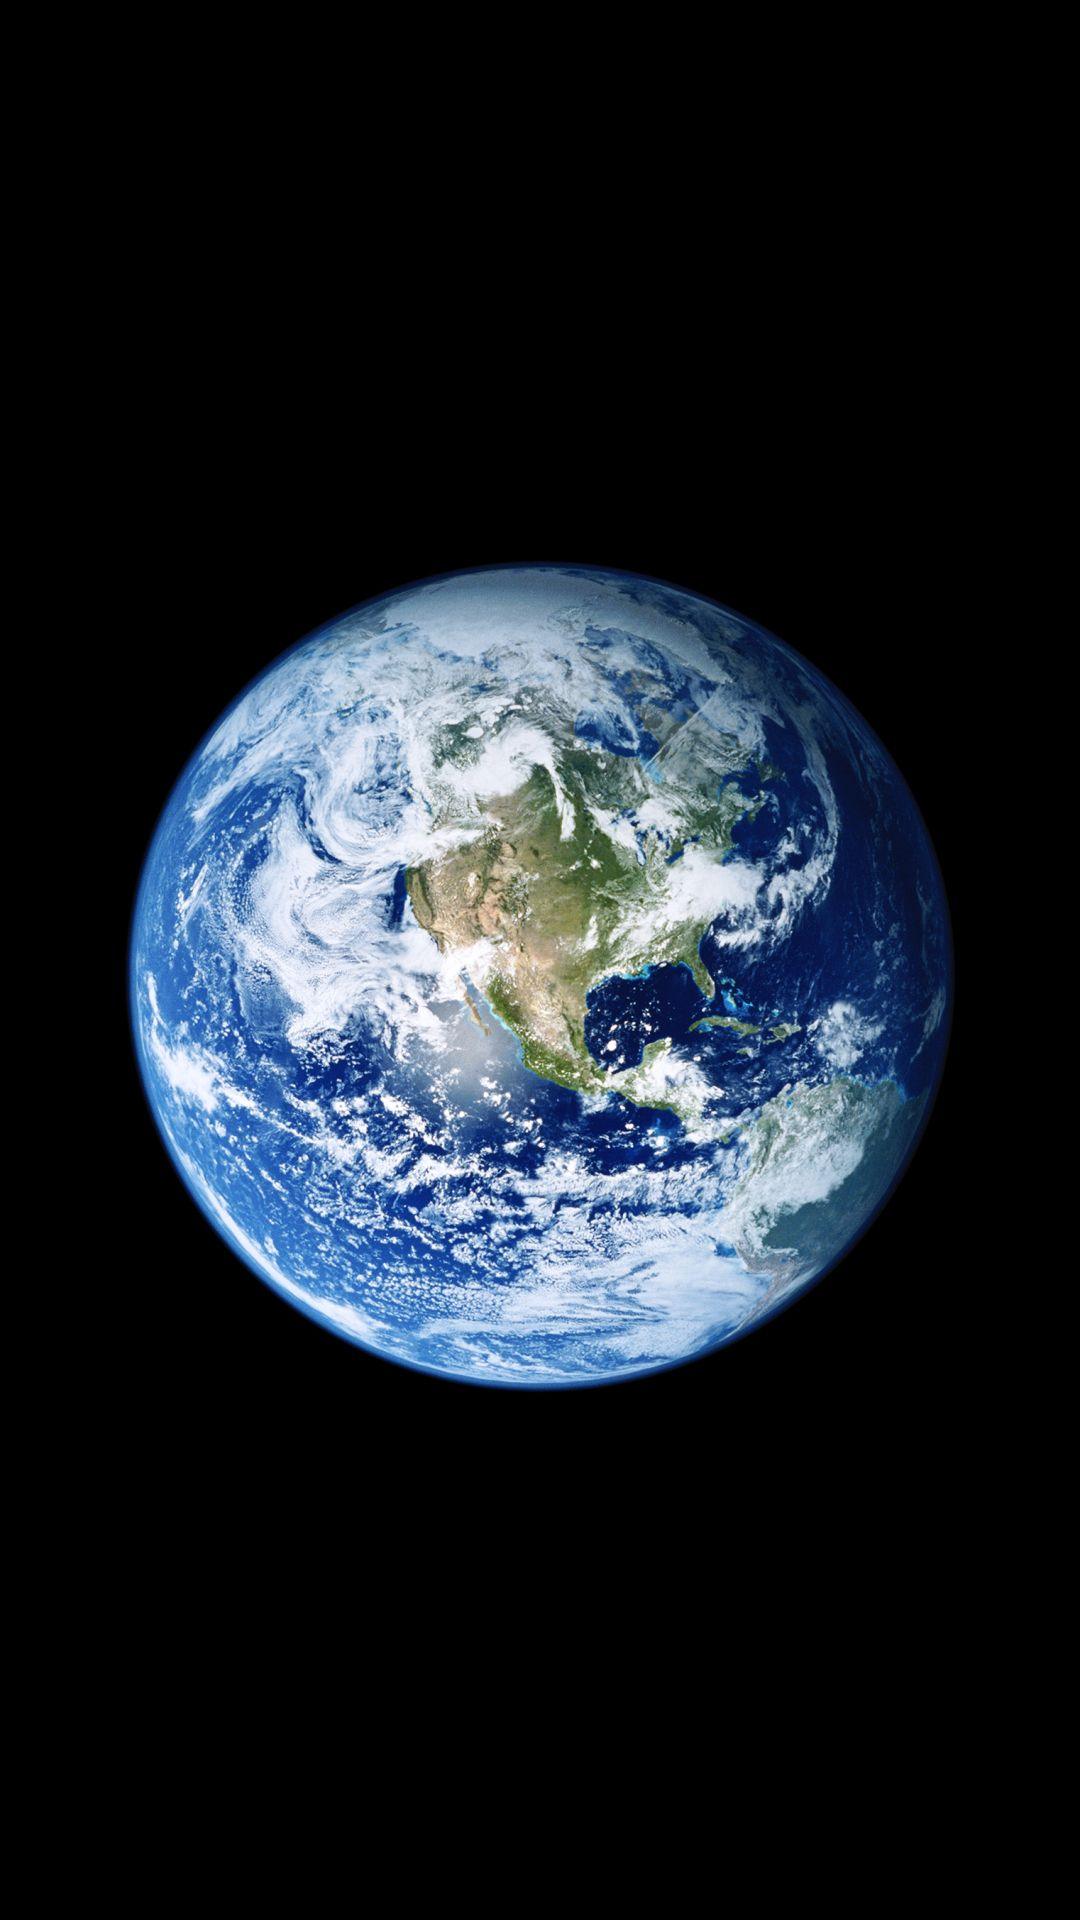 Earth iPhone Wallpaper in 2019 | Wallpapers | Iphone wallpaper earth, Wallpaper earth, Earth ...